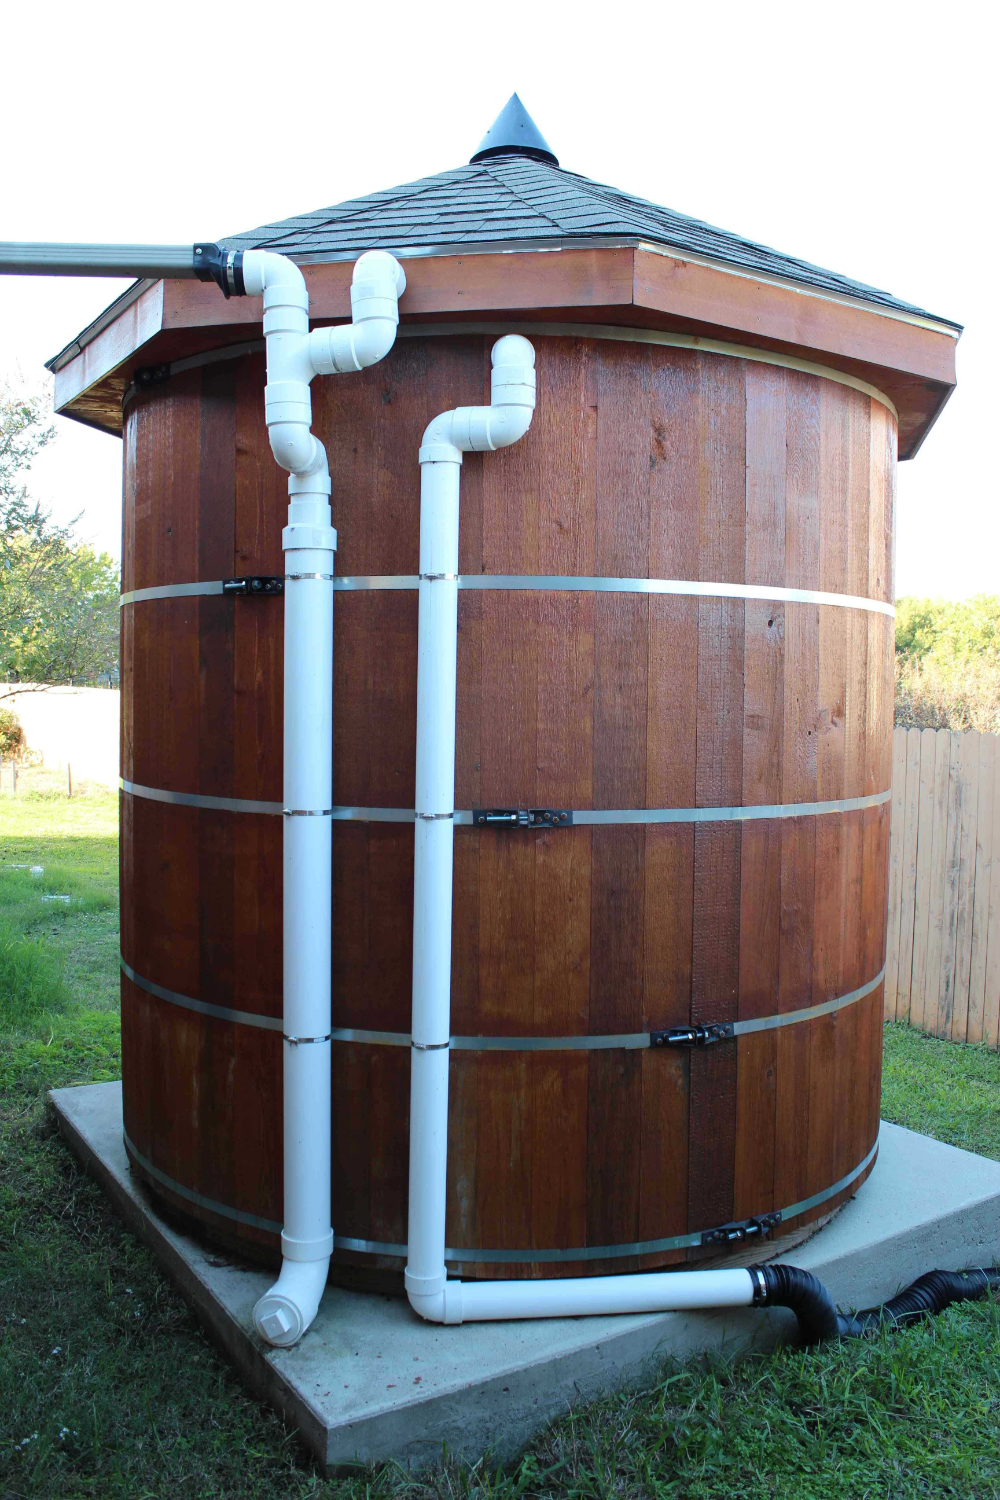 Harvest Rainwater With A Wooden Water Storage Tank You Build Yourself In 2020 Rain Water Collection Rainwater Rain Water Collection System